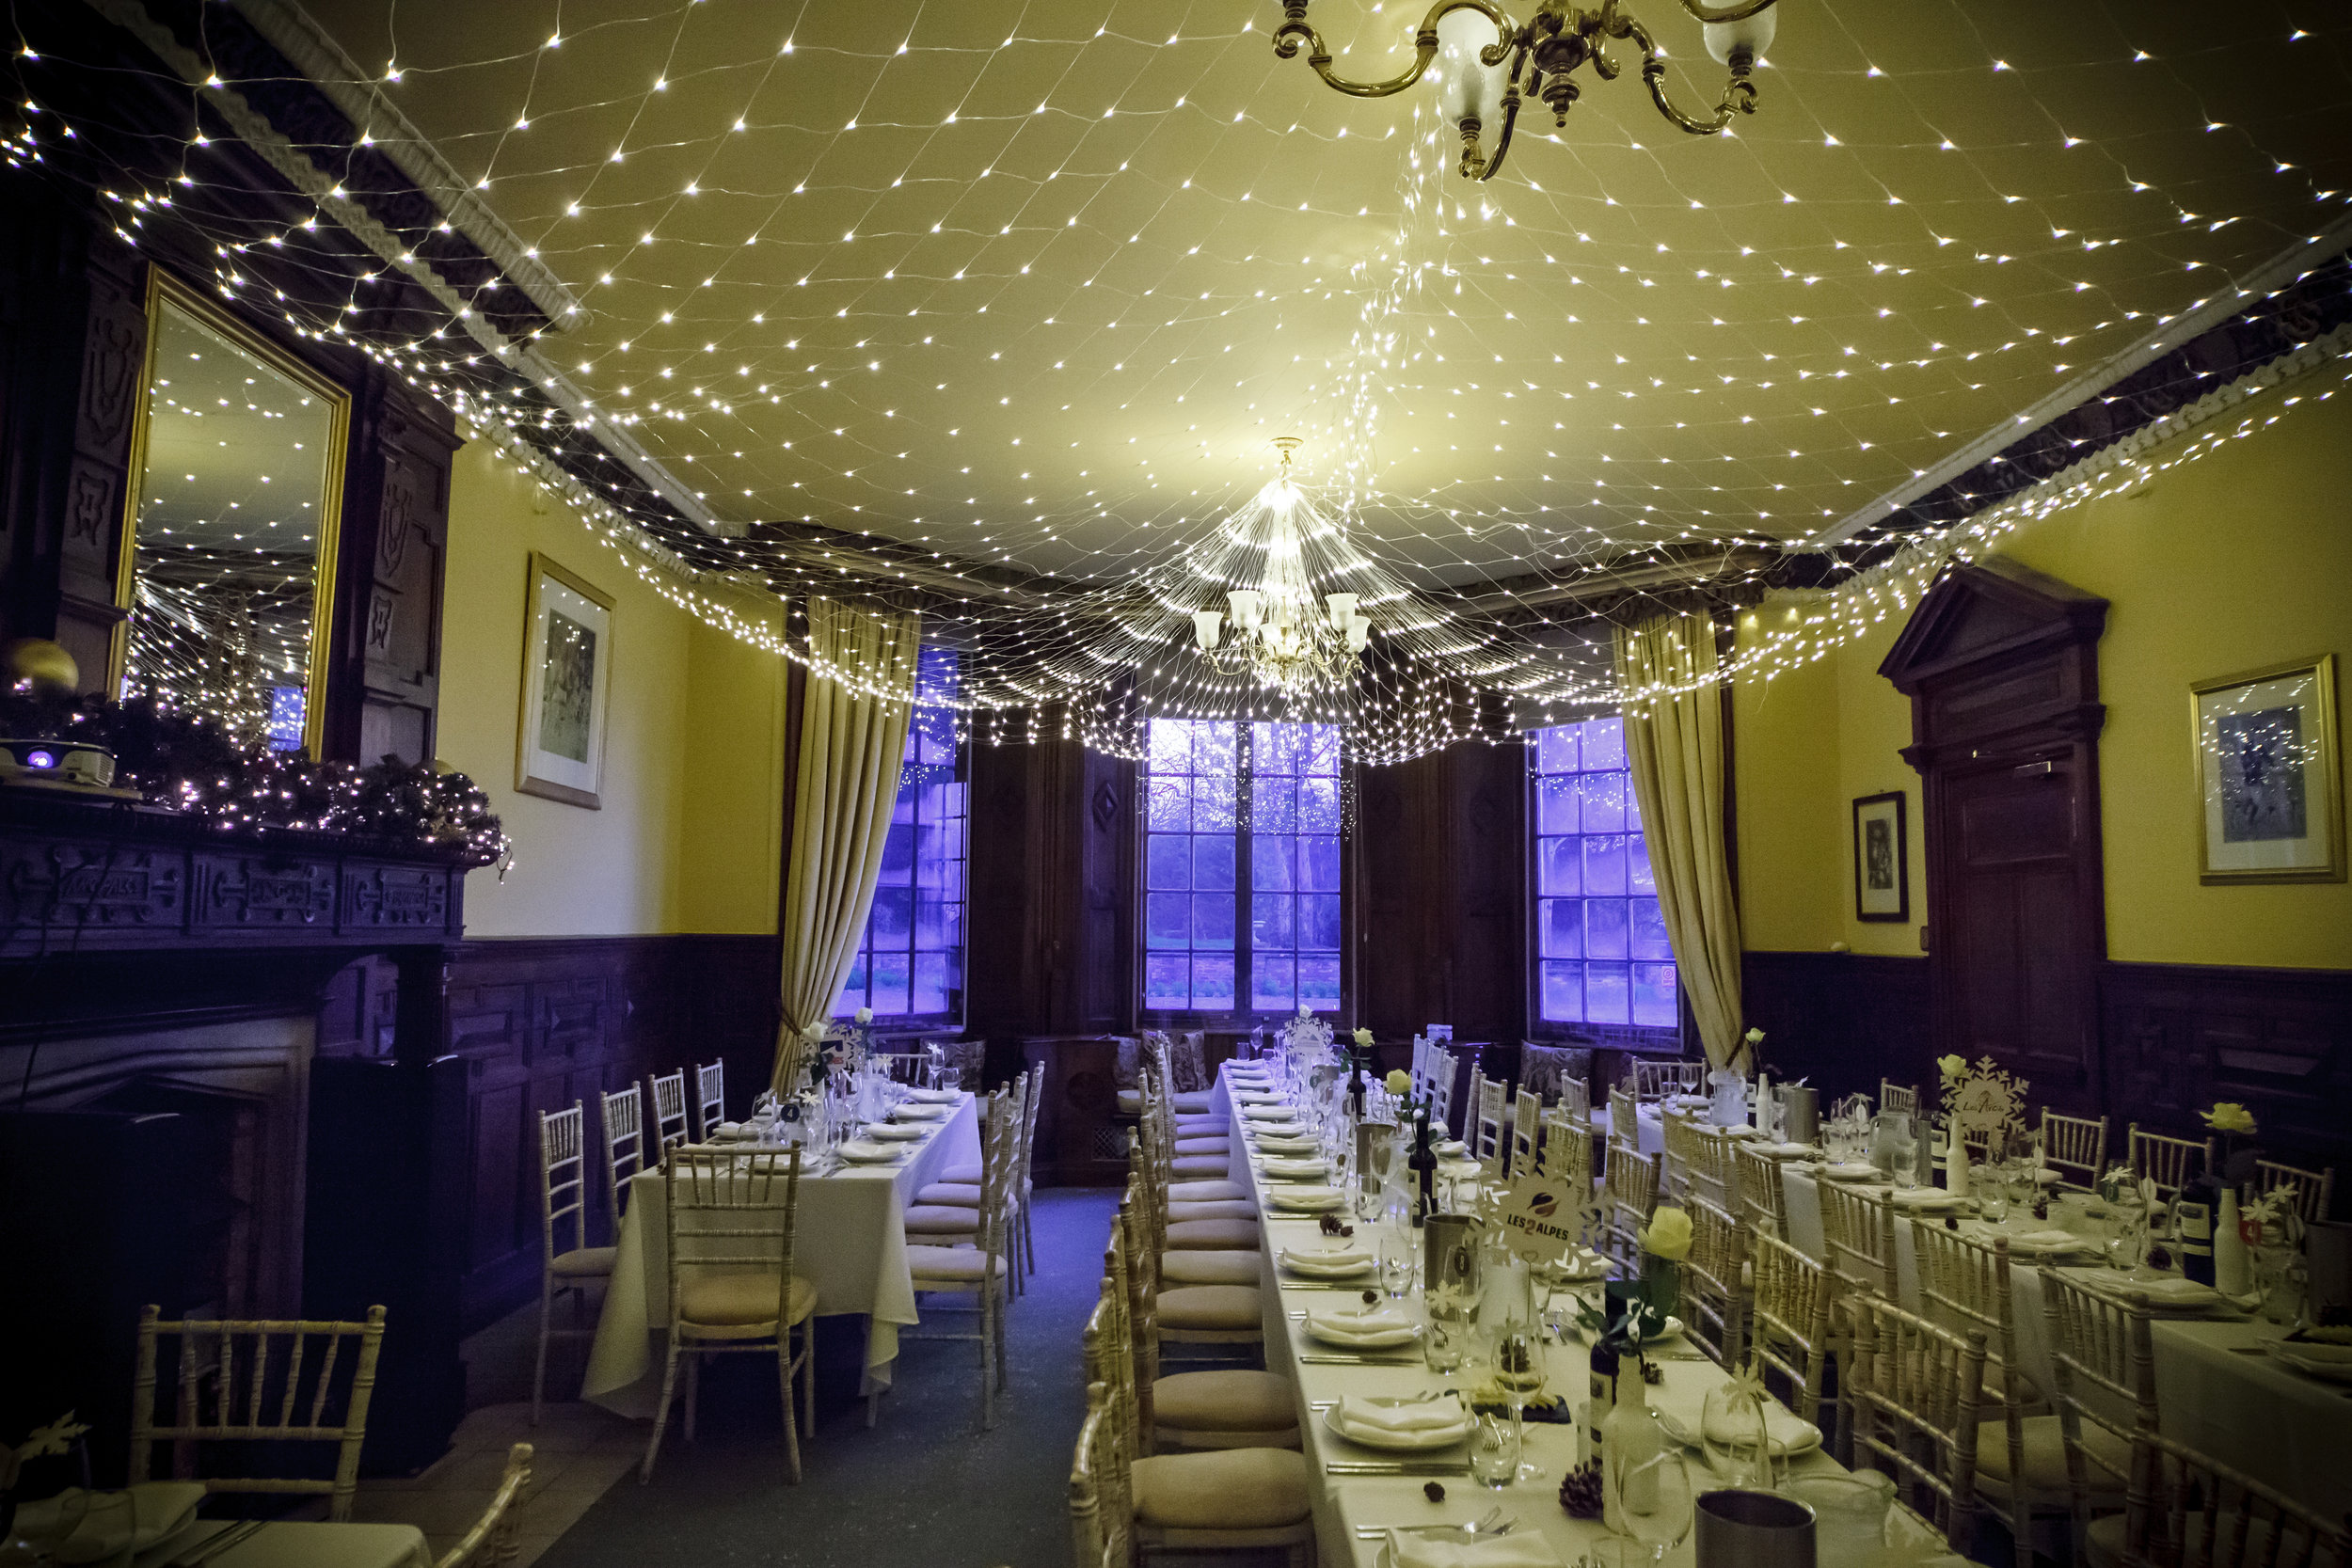 Skendleby Hall wedding reception with long tables